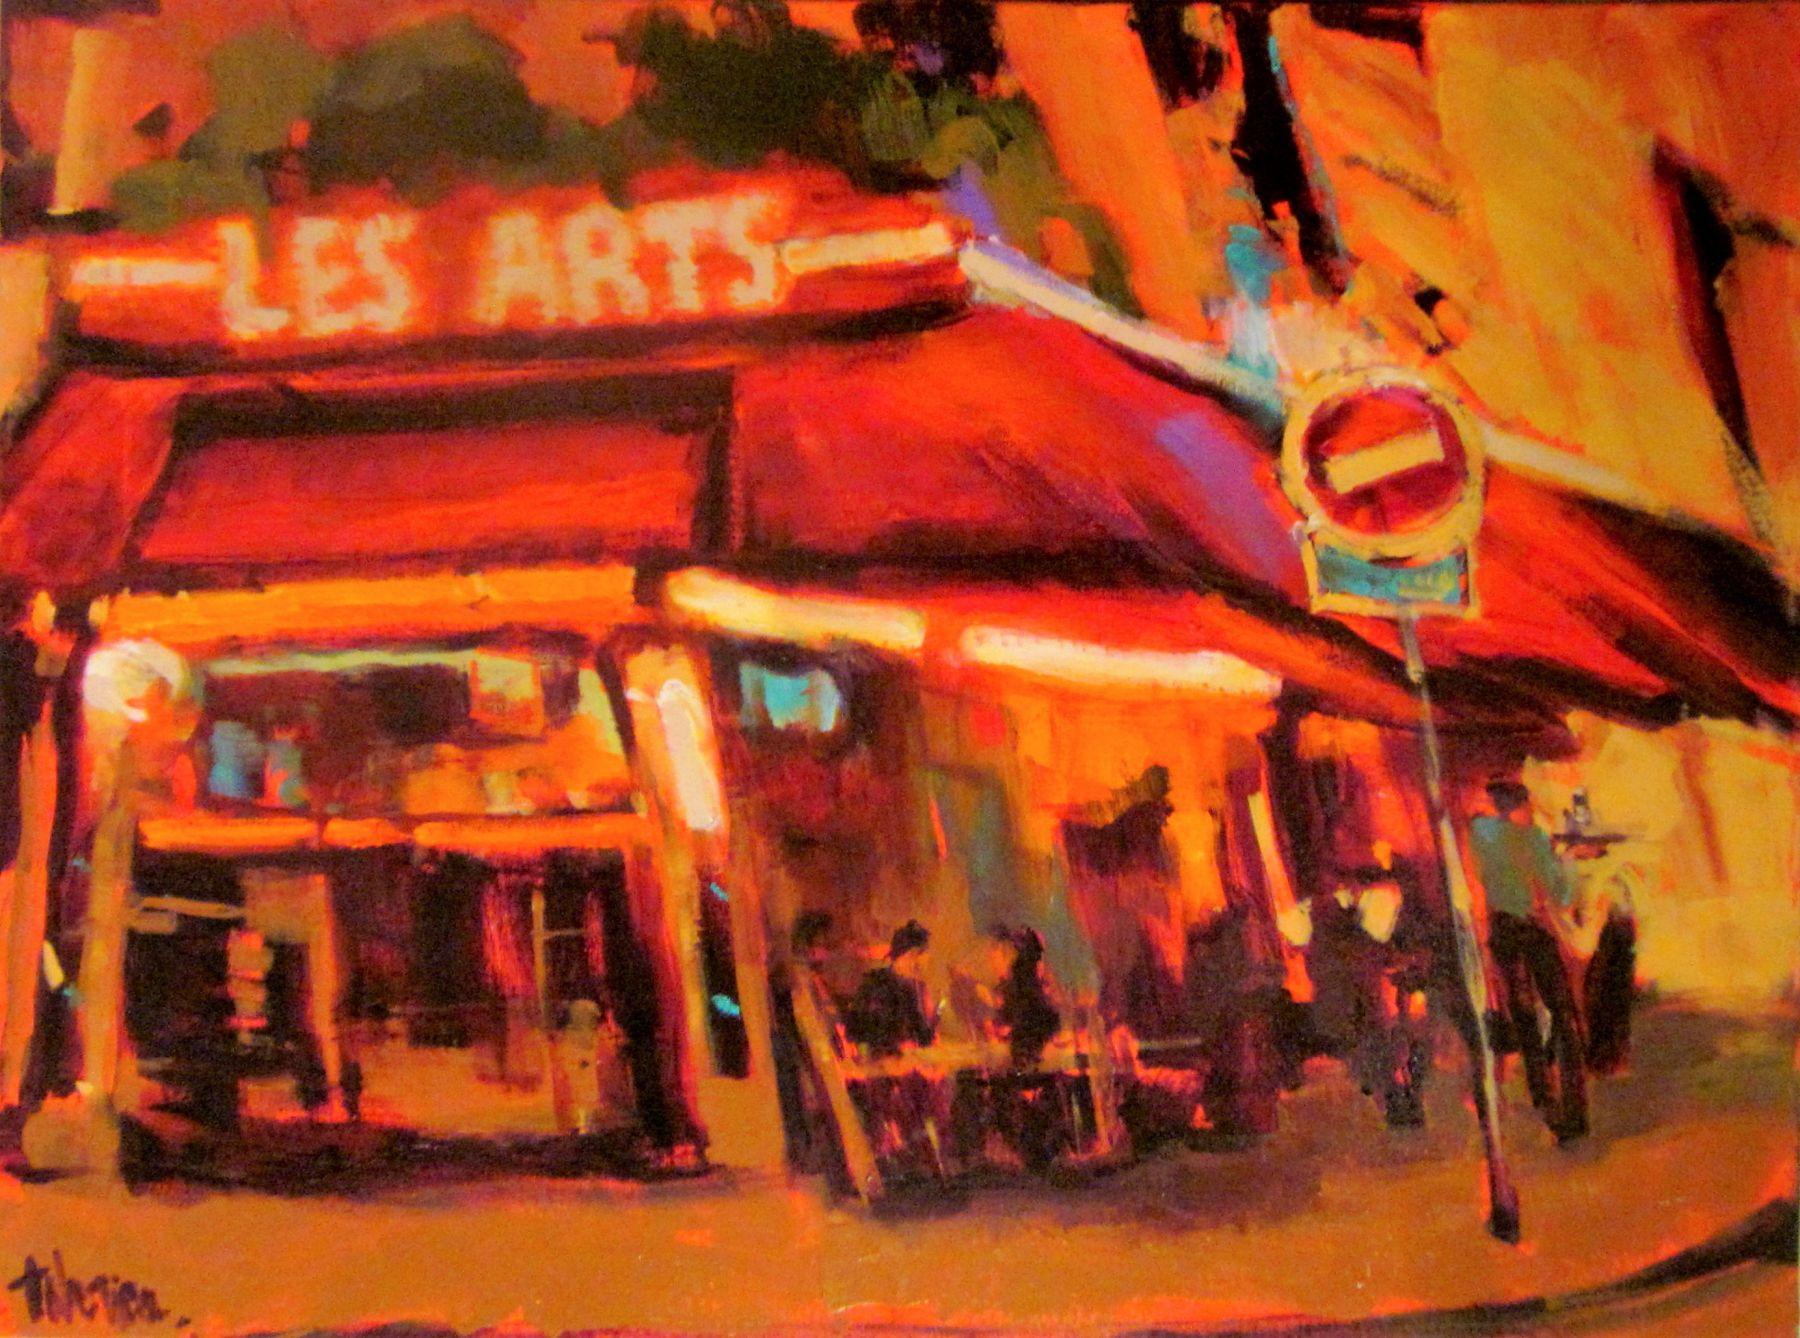 Les Arts Cafe, Paris